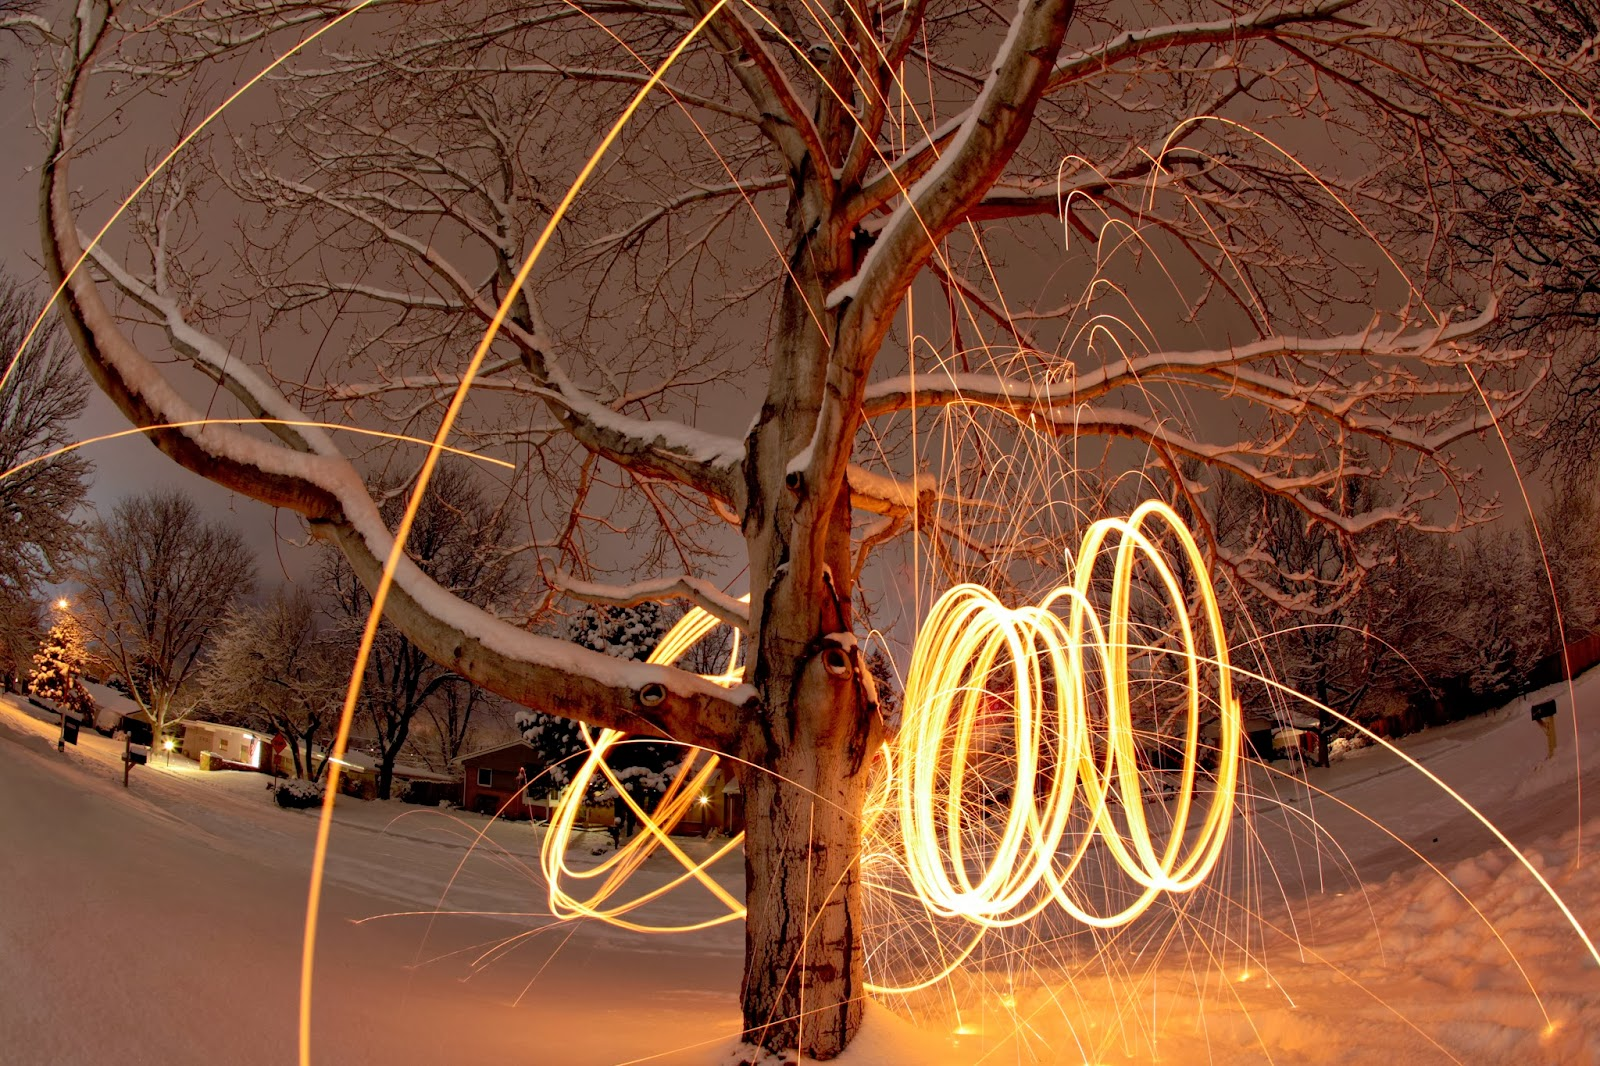 Spinning some burning steel wool by a tree in a snowy front yard.